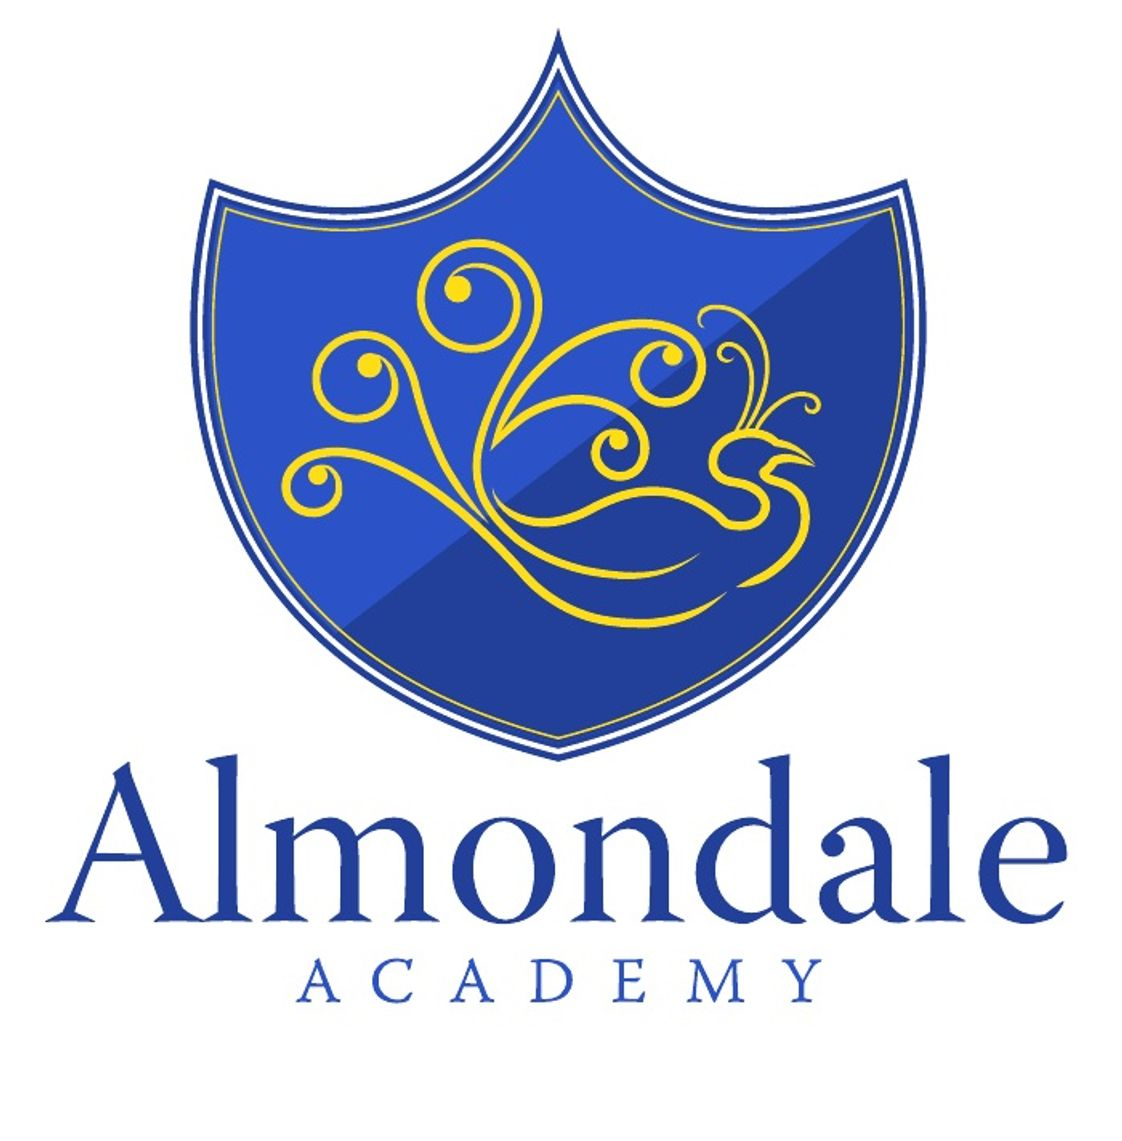 Almondale Academy Photo